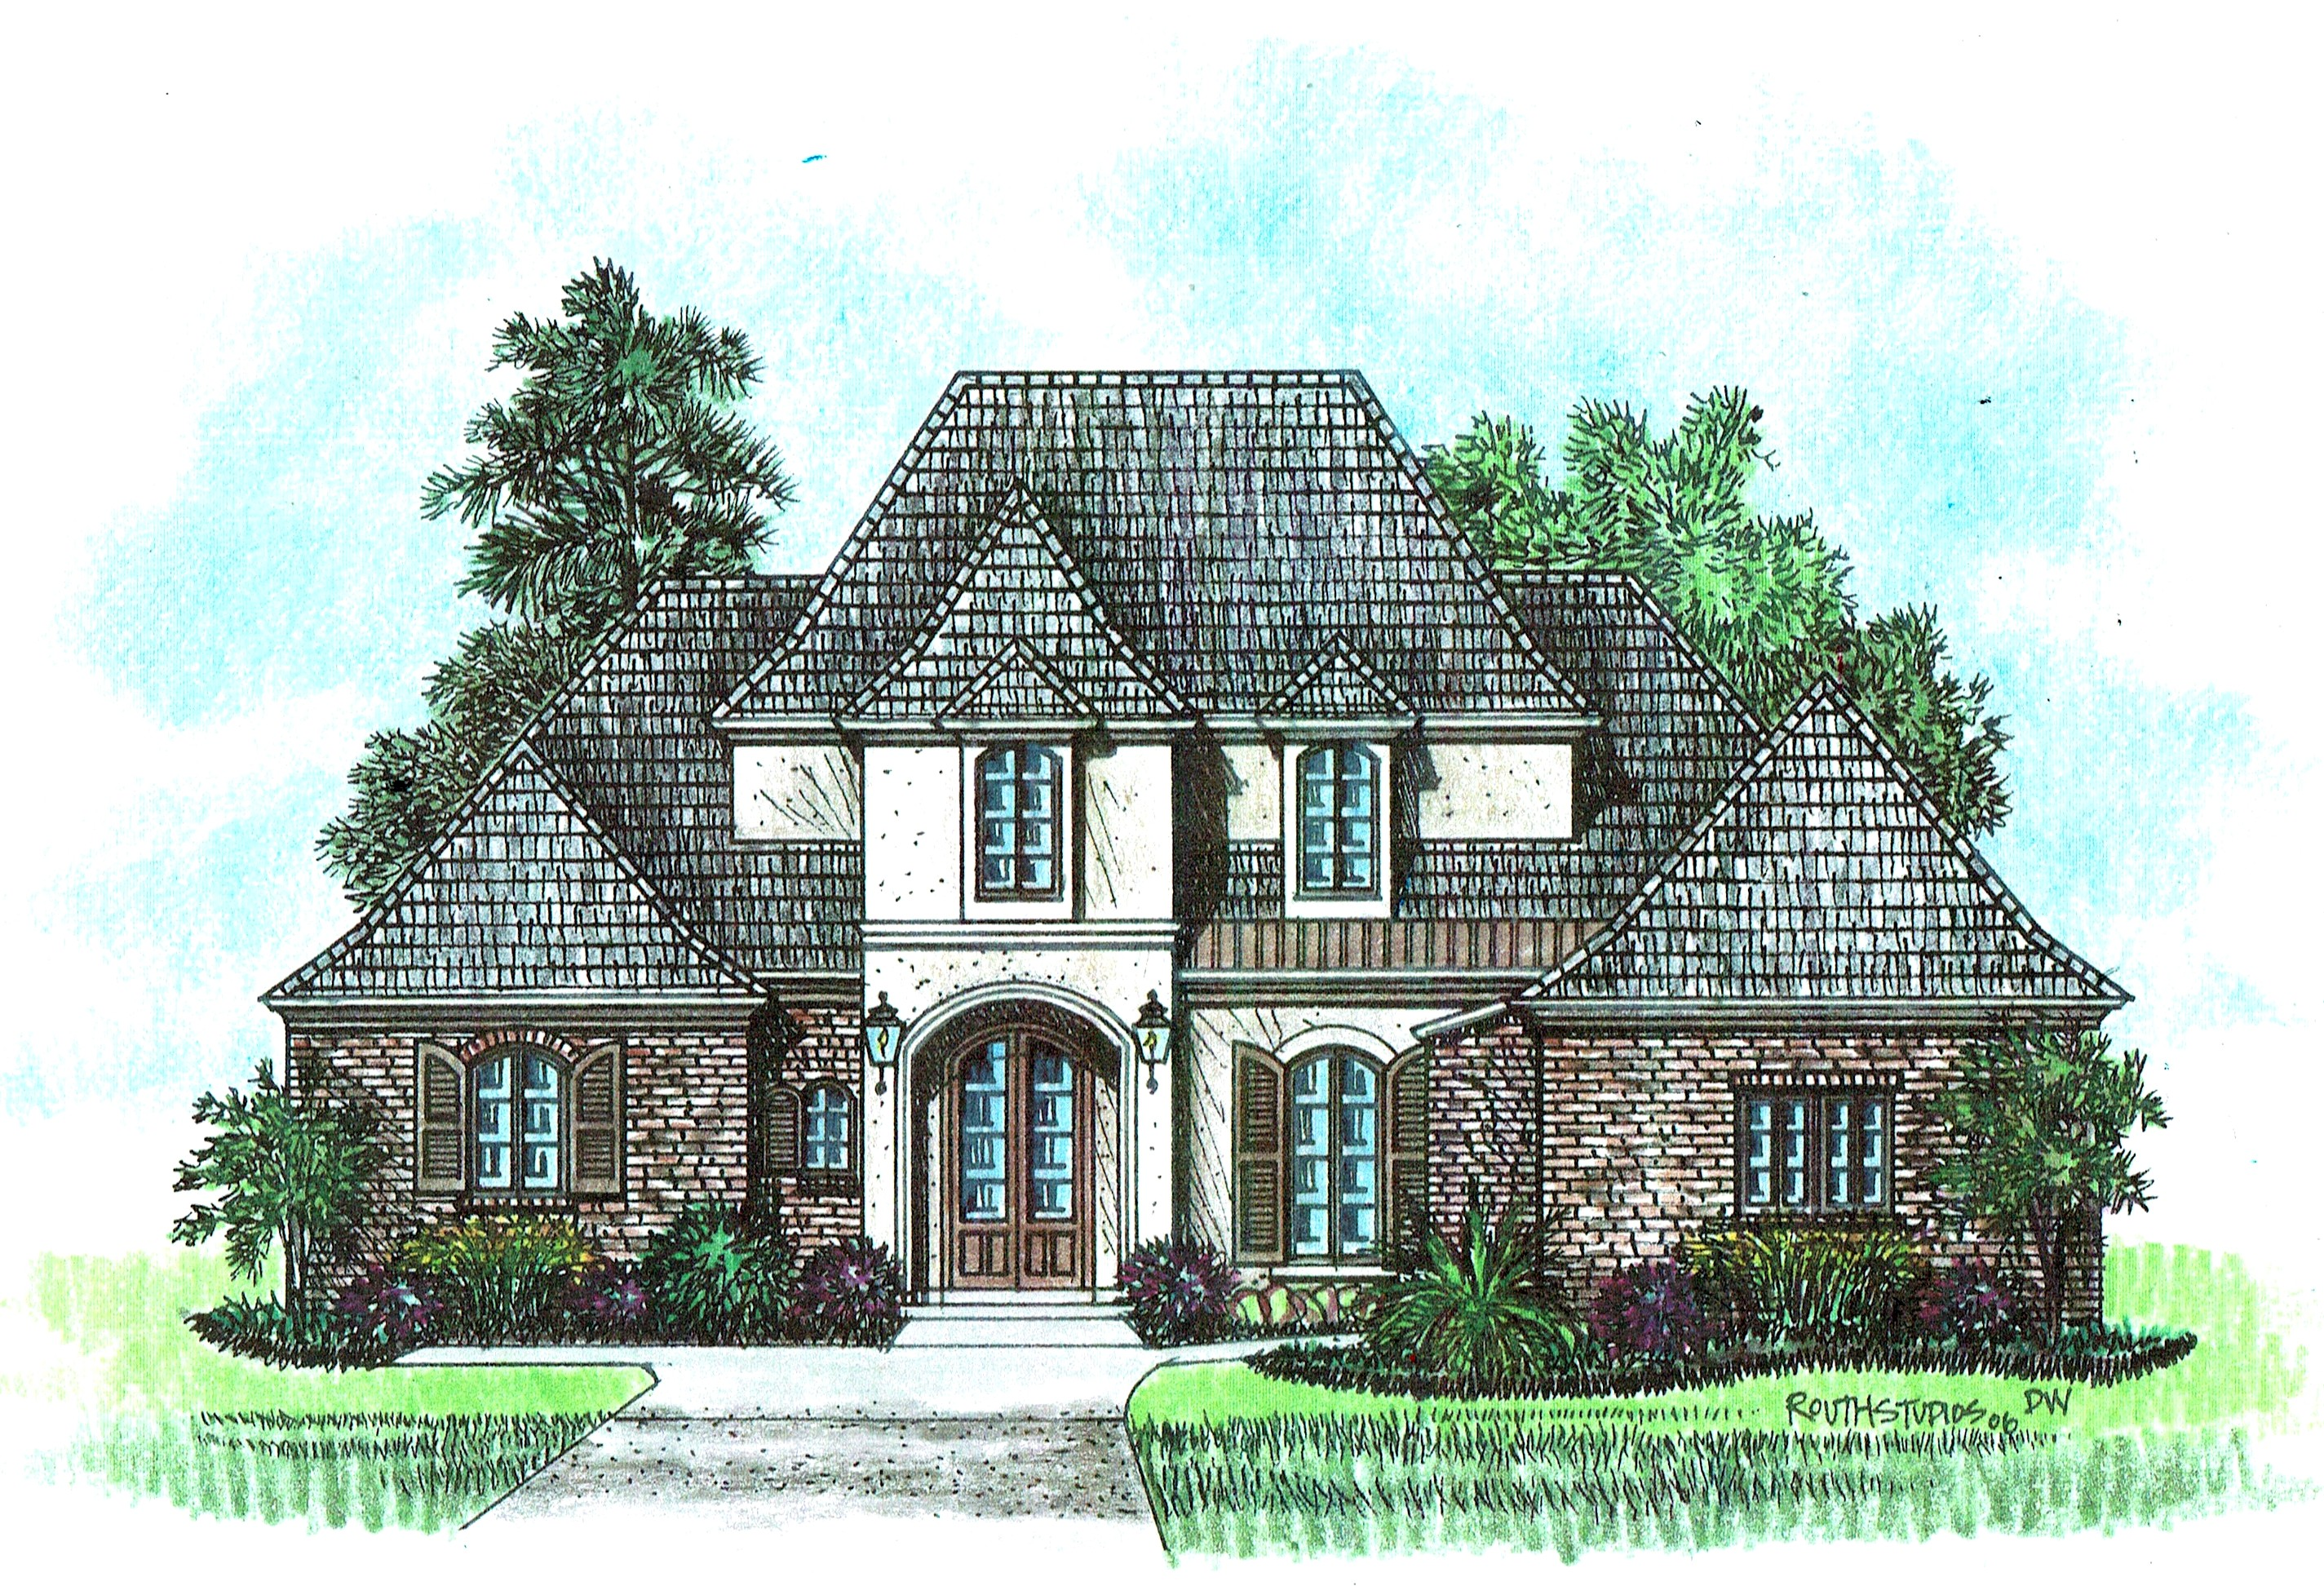 Fountainbleau acadiana home design for Acadiana homes